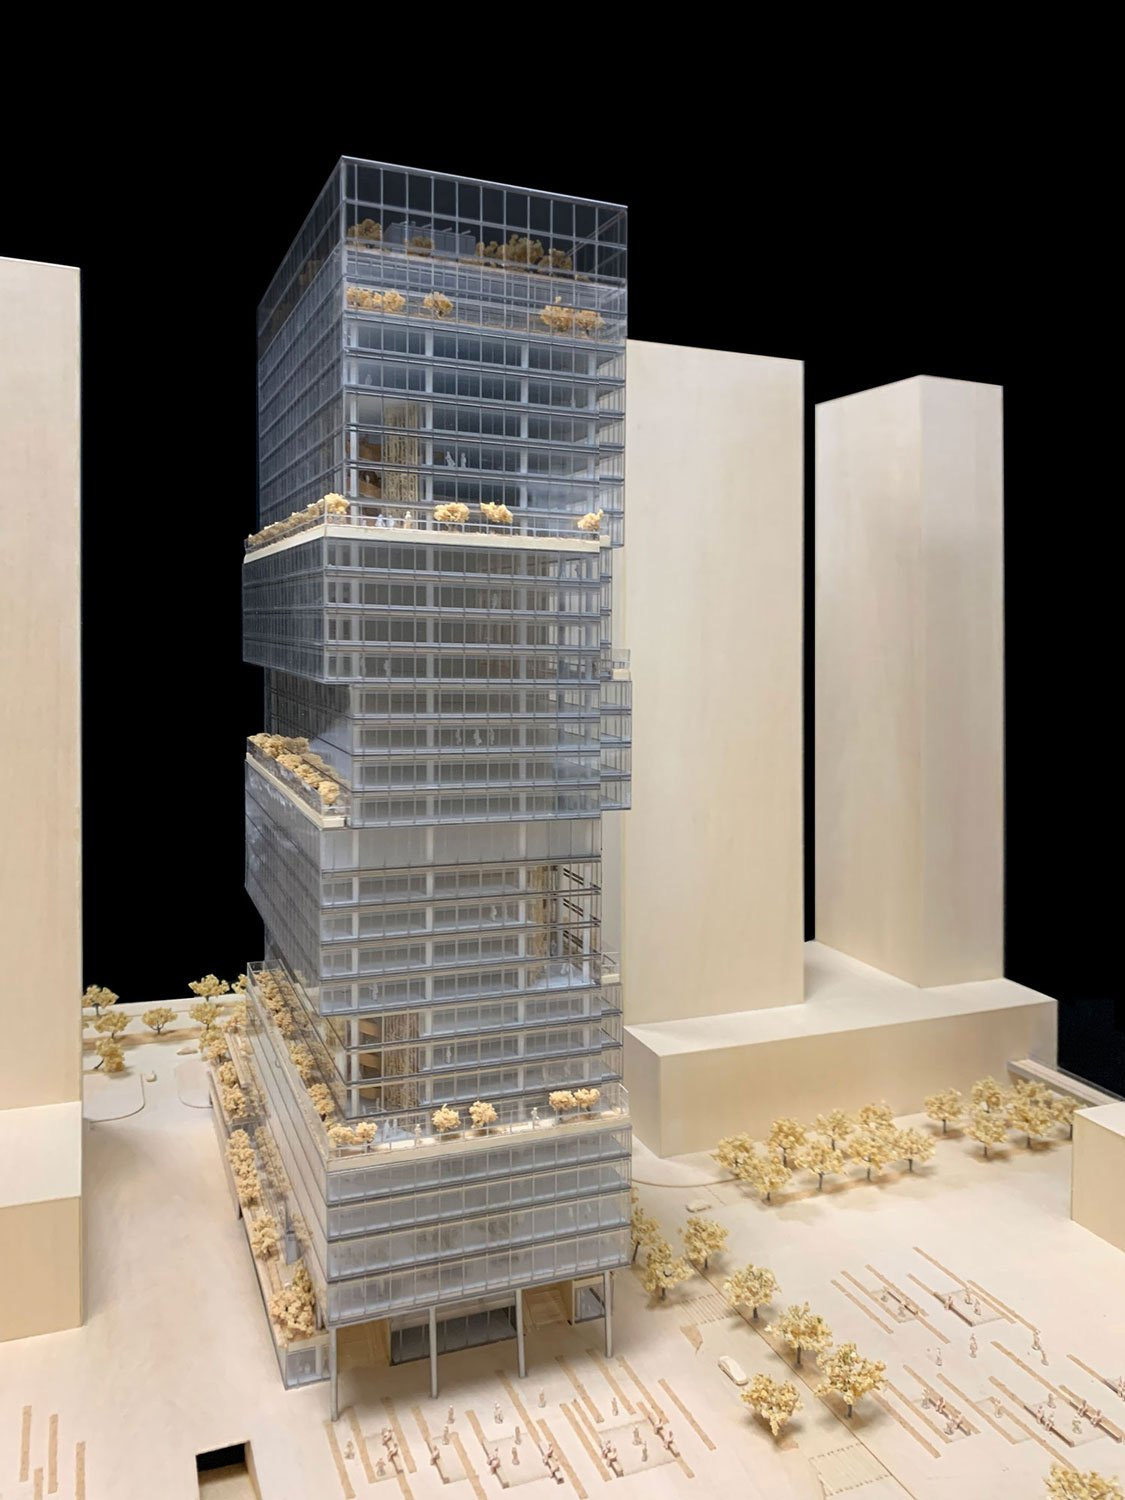 North Facade View Physical Model Jaeger Kahlen Partners Architects Ltd.